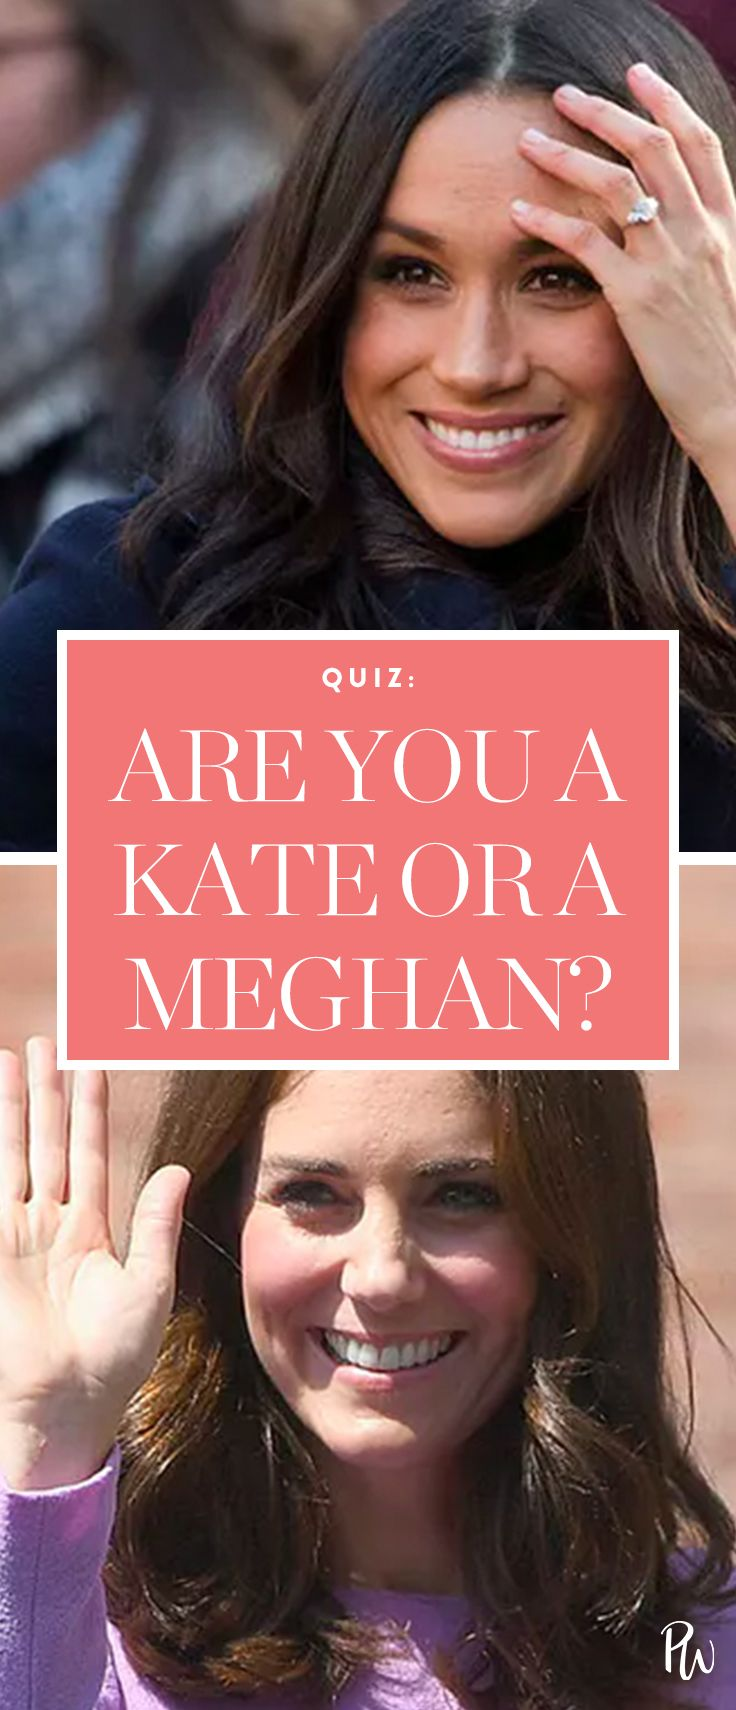 Quiz: Are You a Kate or a Meghan? | News & Entertainment